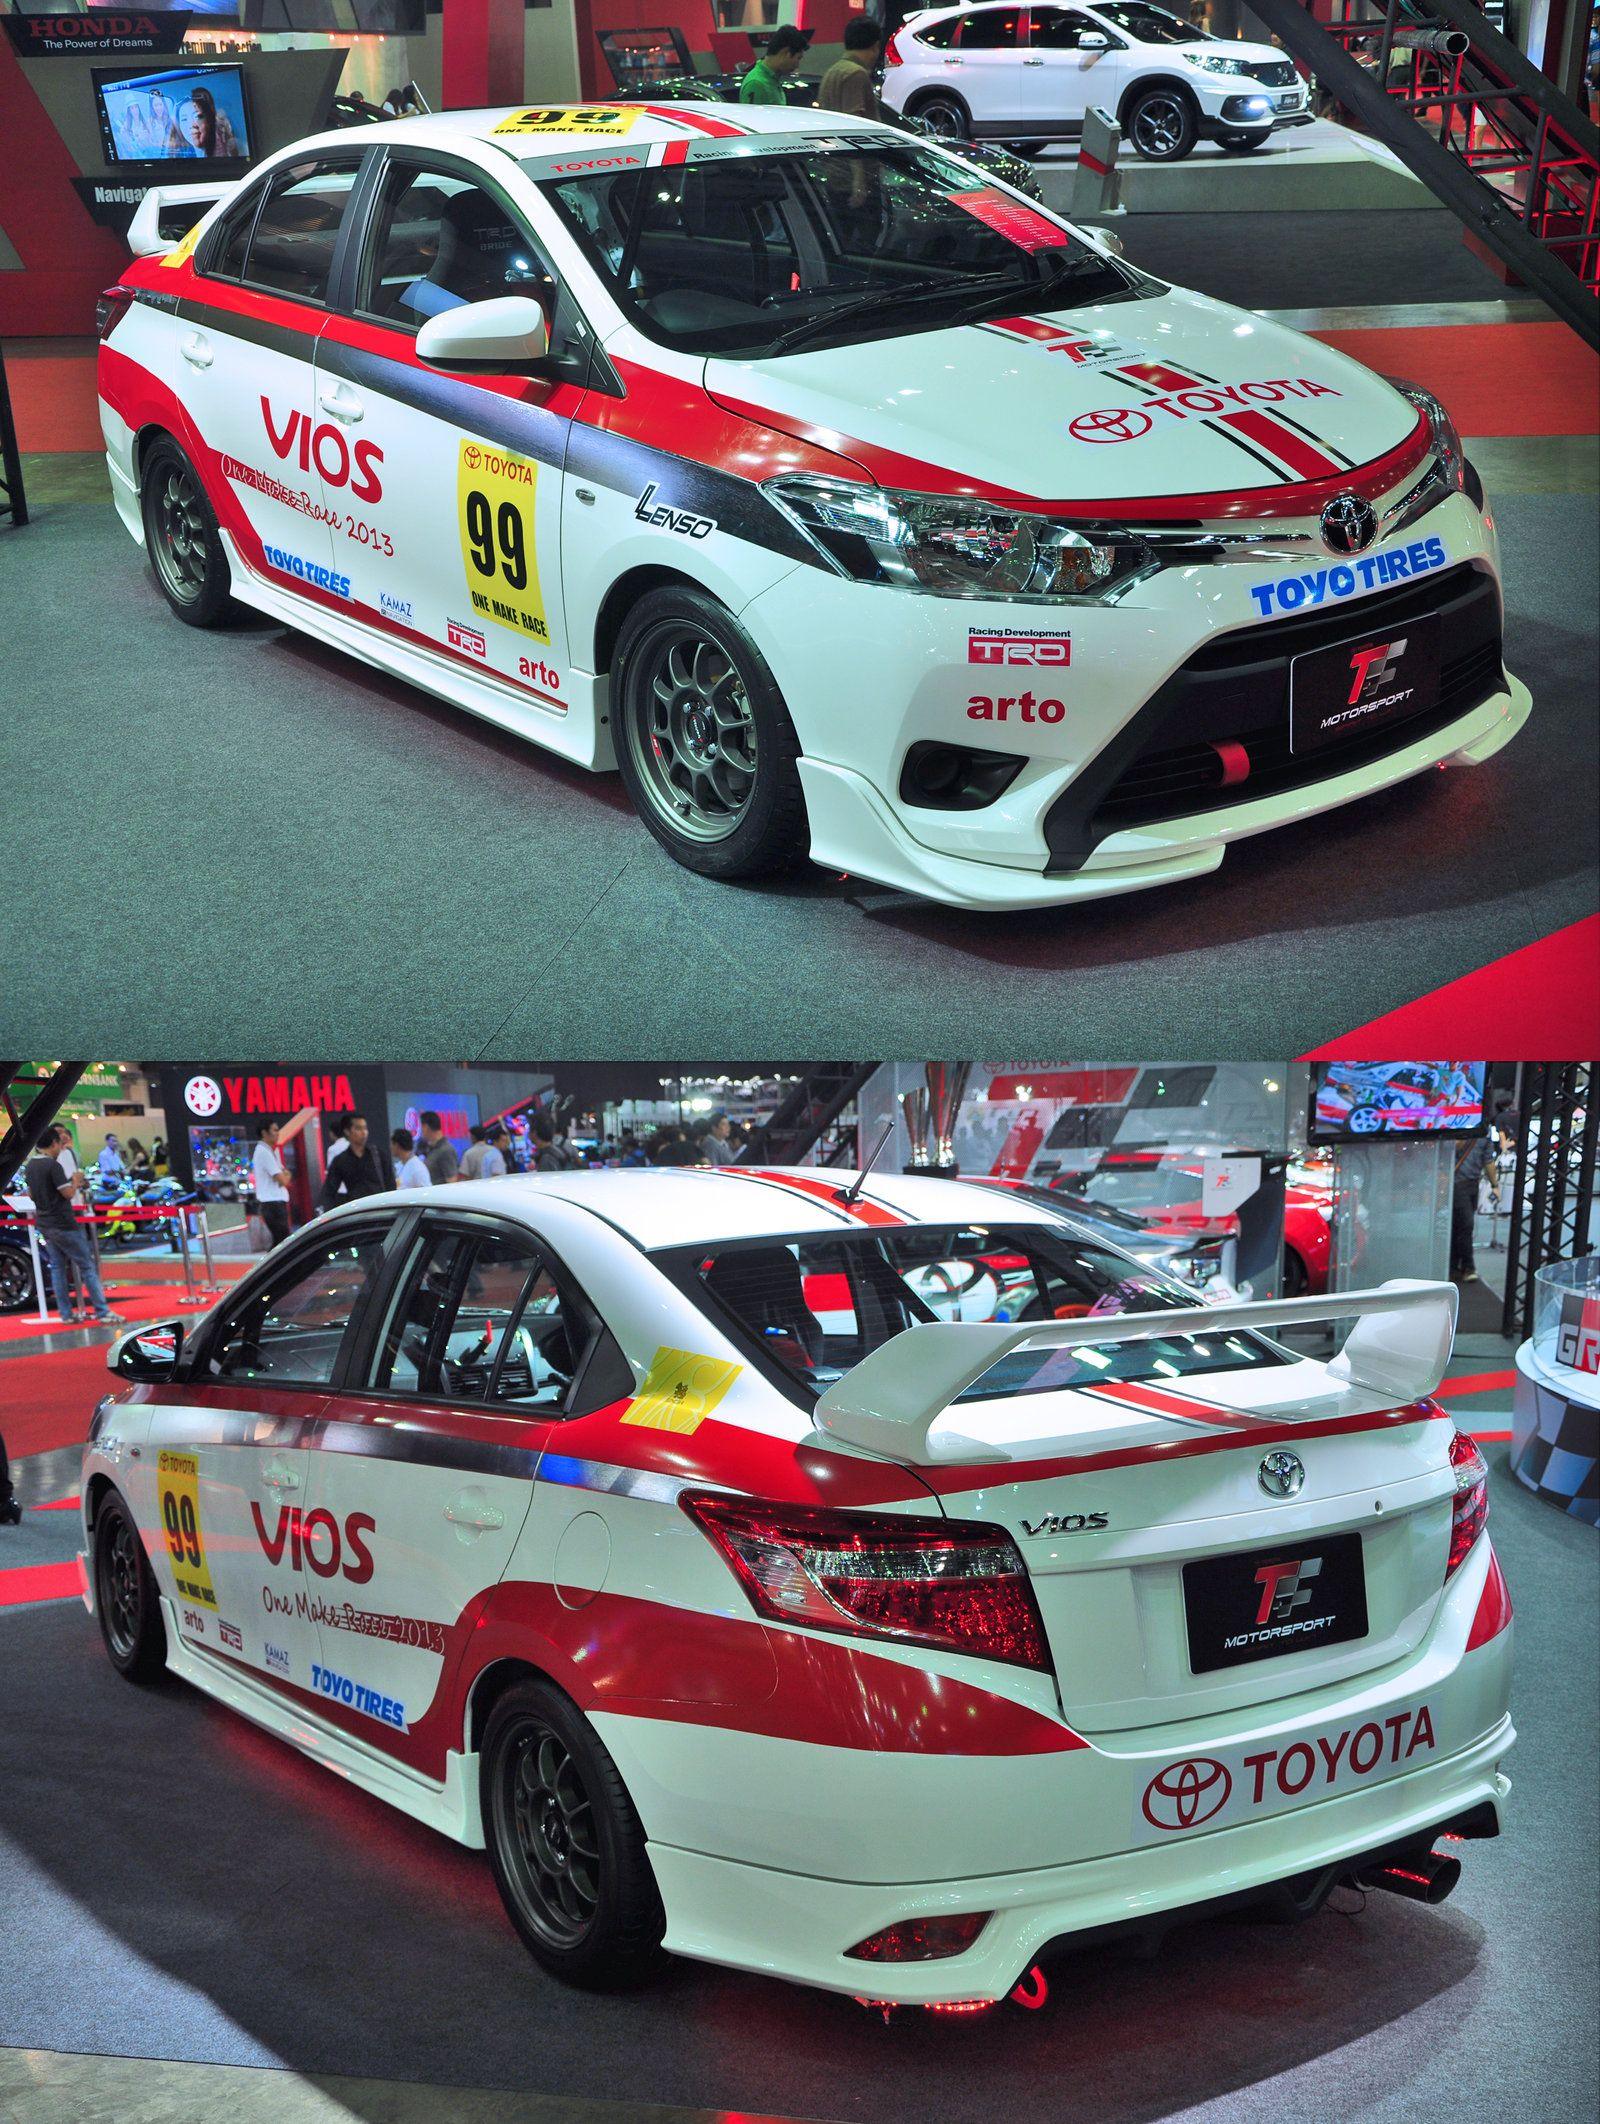 Toyota Vios One Make Race Car At Bangkok Auto Salon 2013